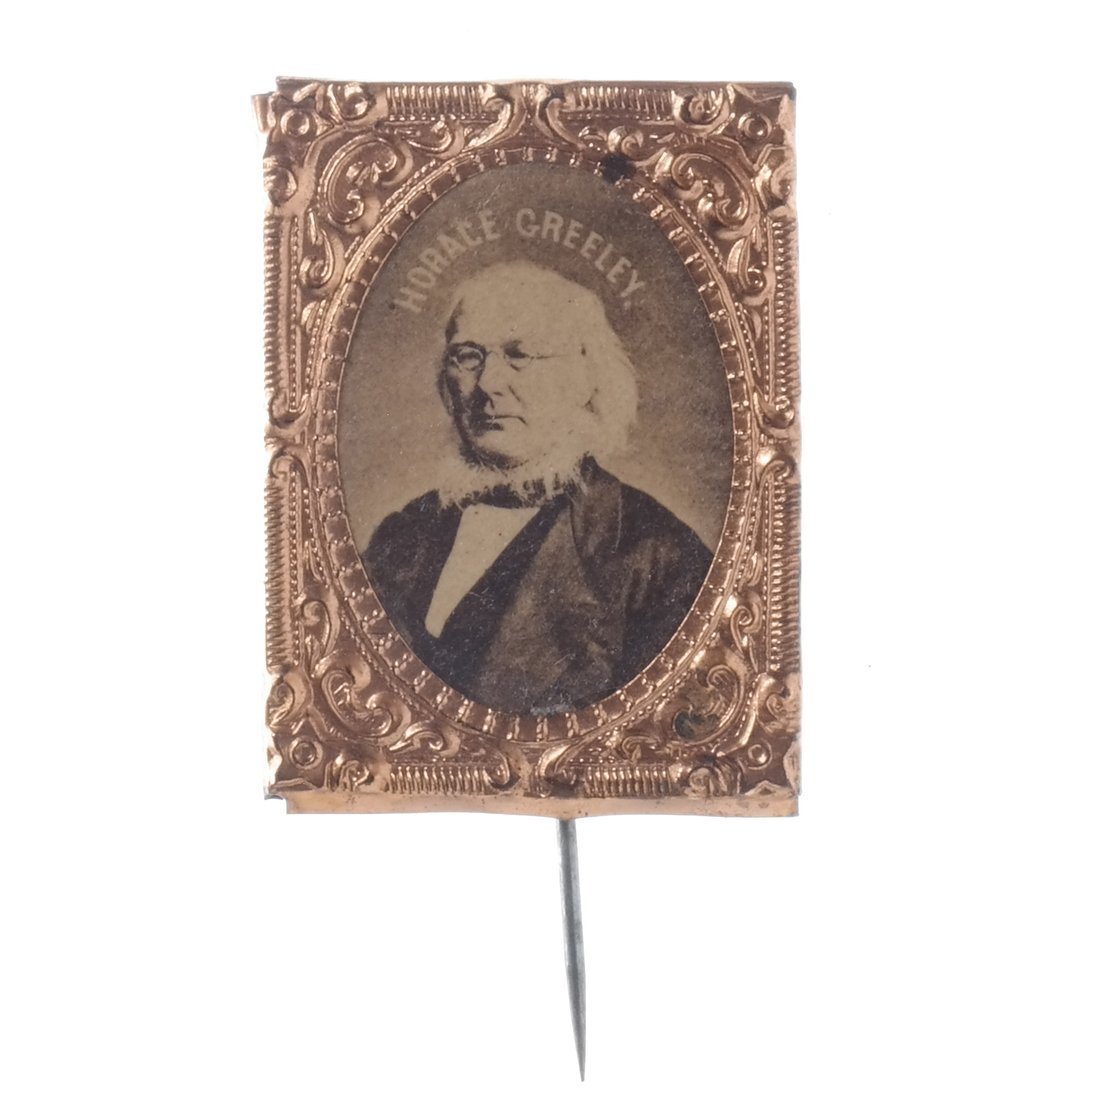 Horace Greeley Three 1872 Albumen Stickpins - 4